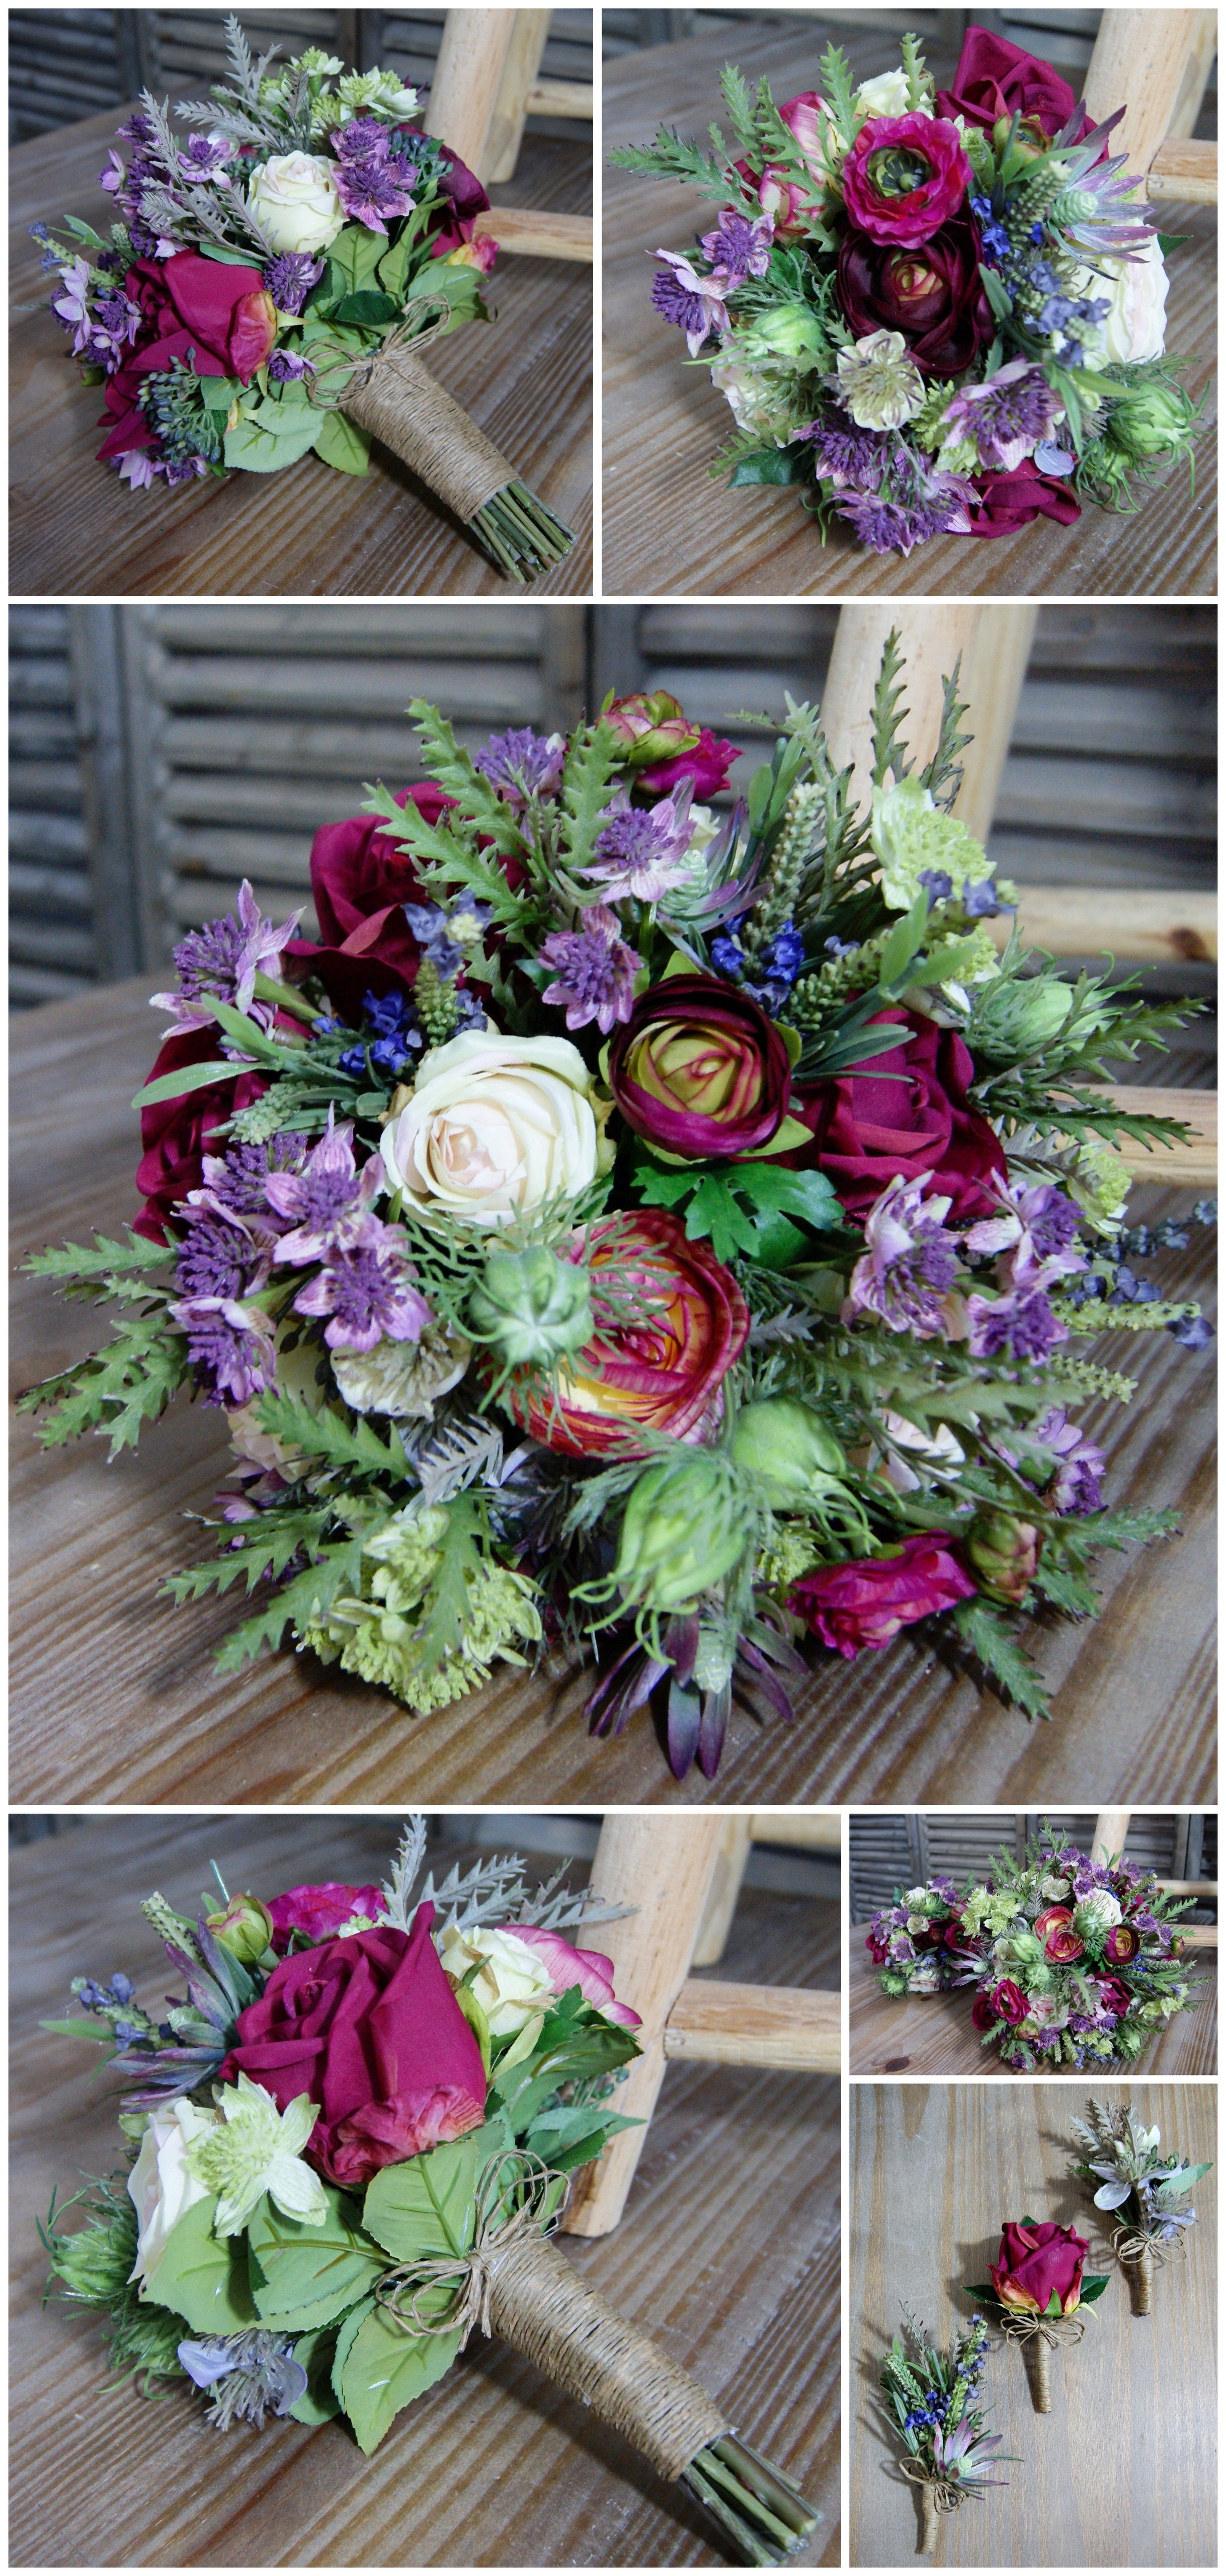 Vibrant, Wild Wedding Flowers for a Rustic Theme Artific